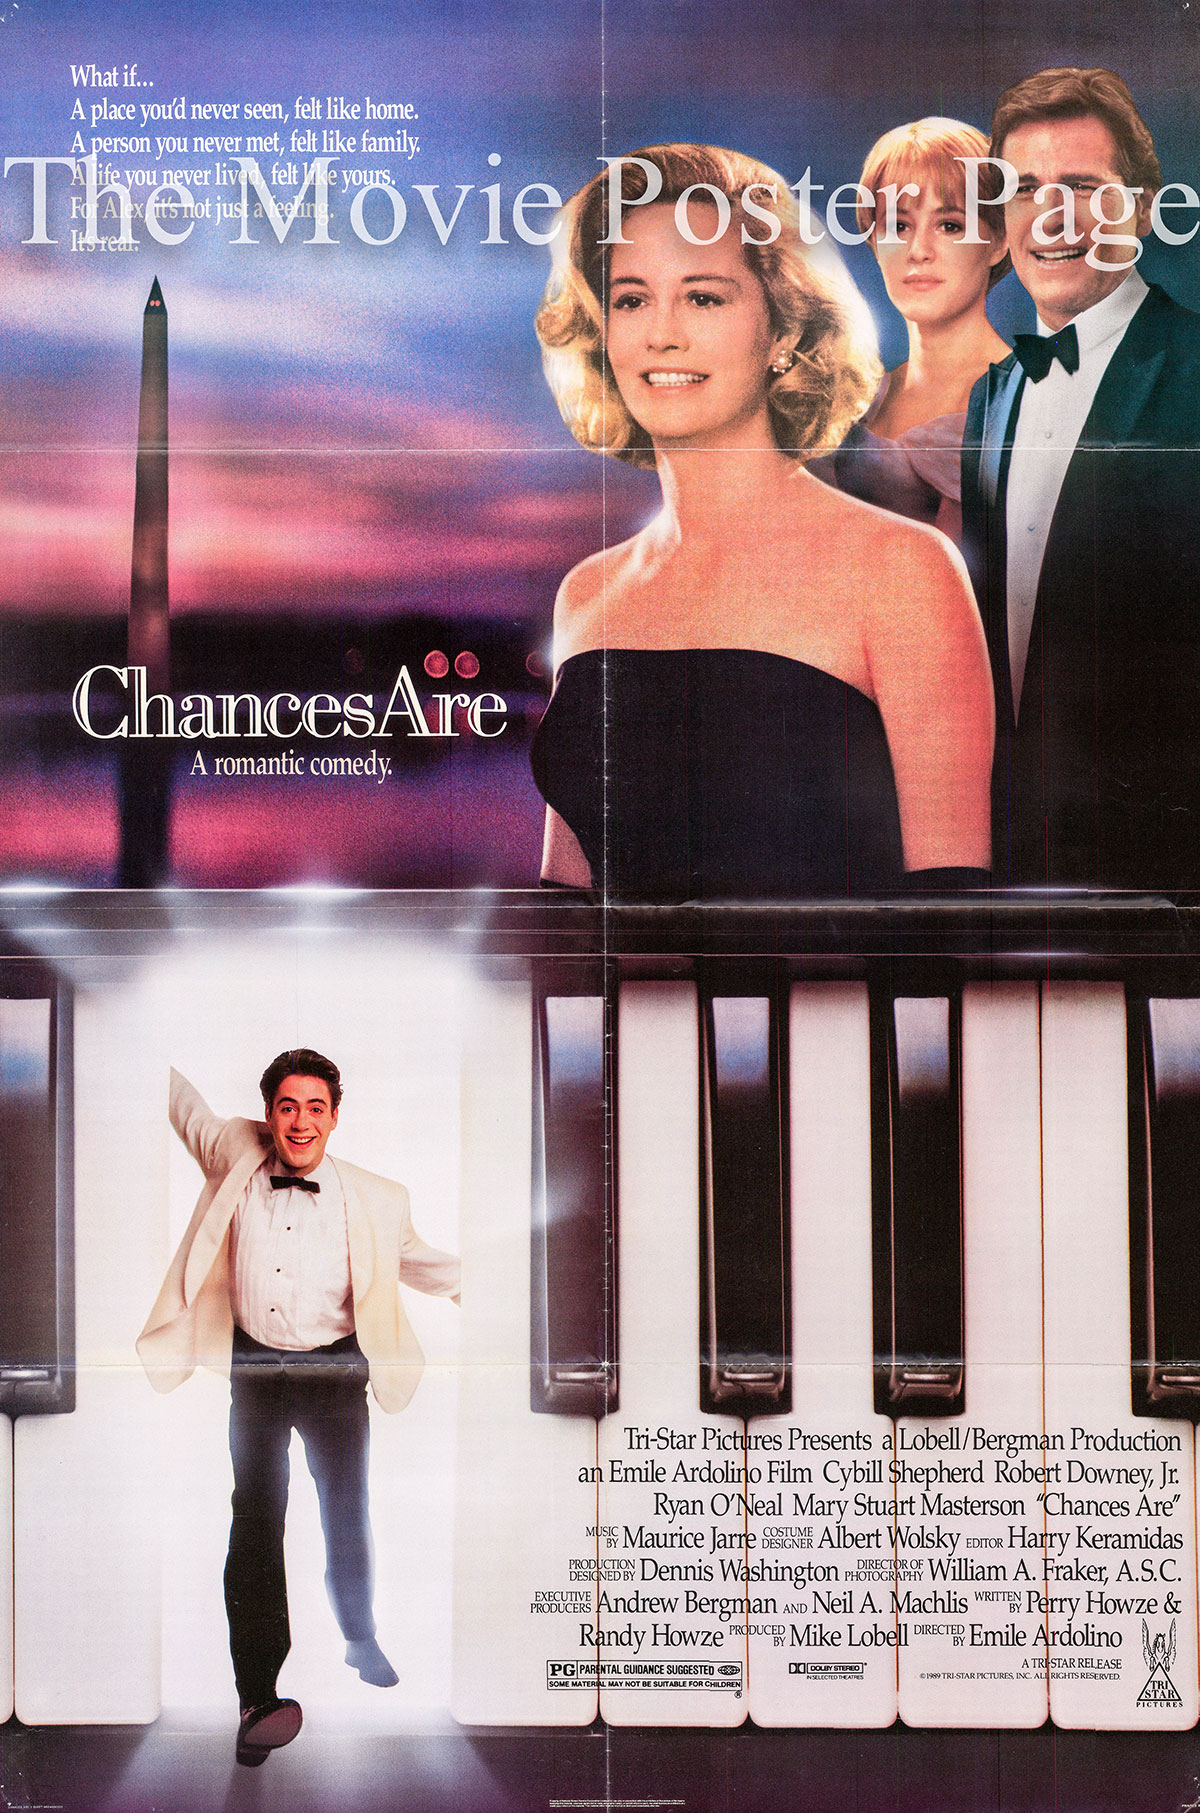 Pictured is a US one-sheet poster for the 1989 Emile Ardolino film Chances Are starring Robert Downey Jr.